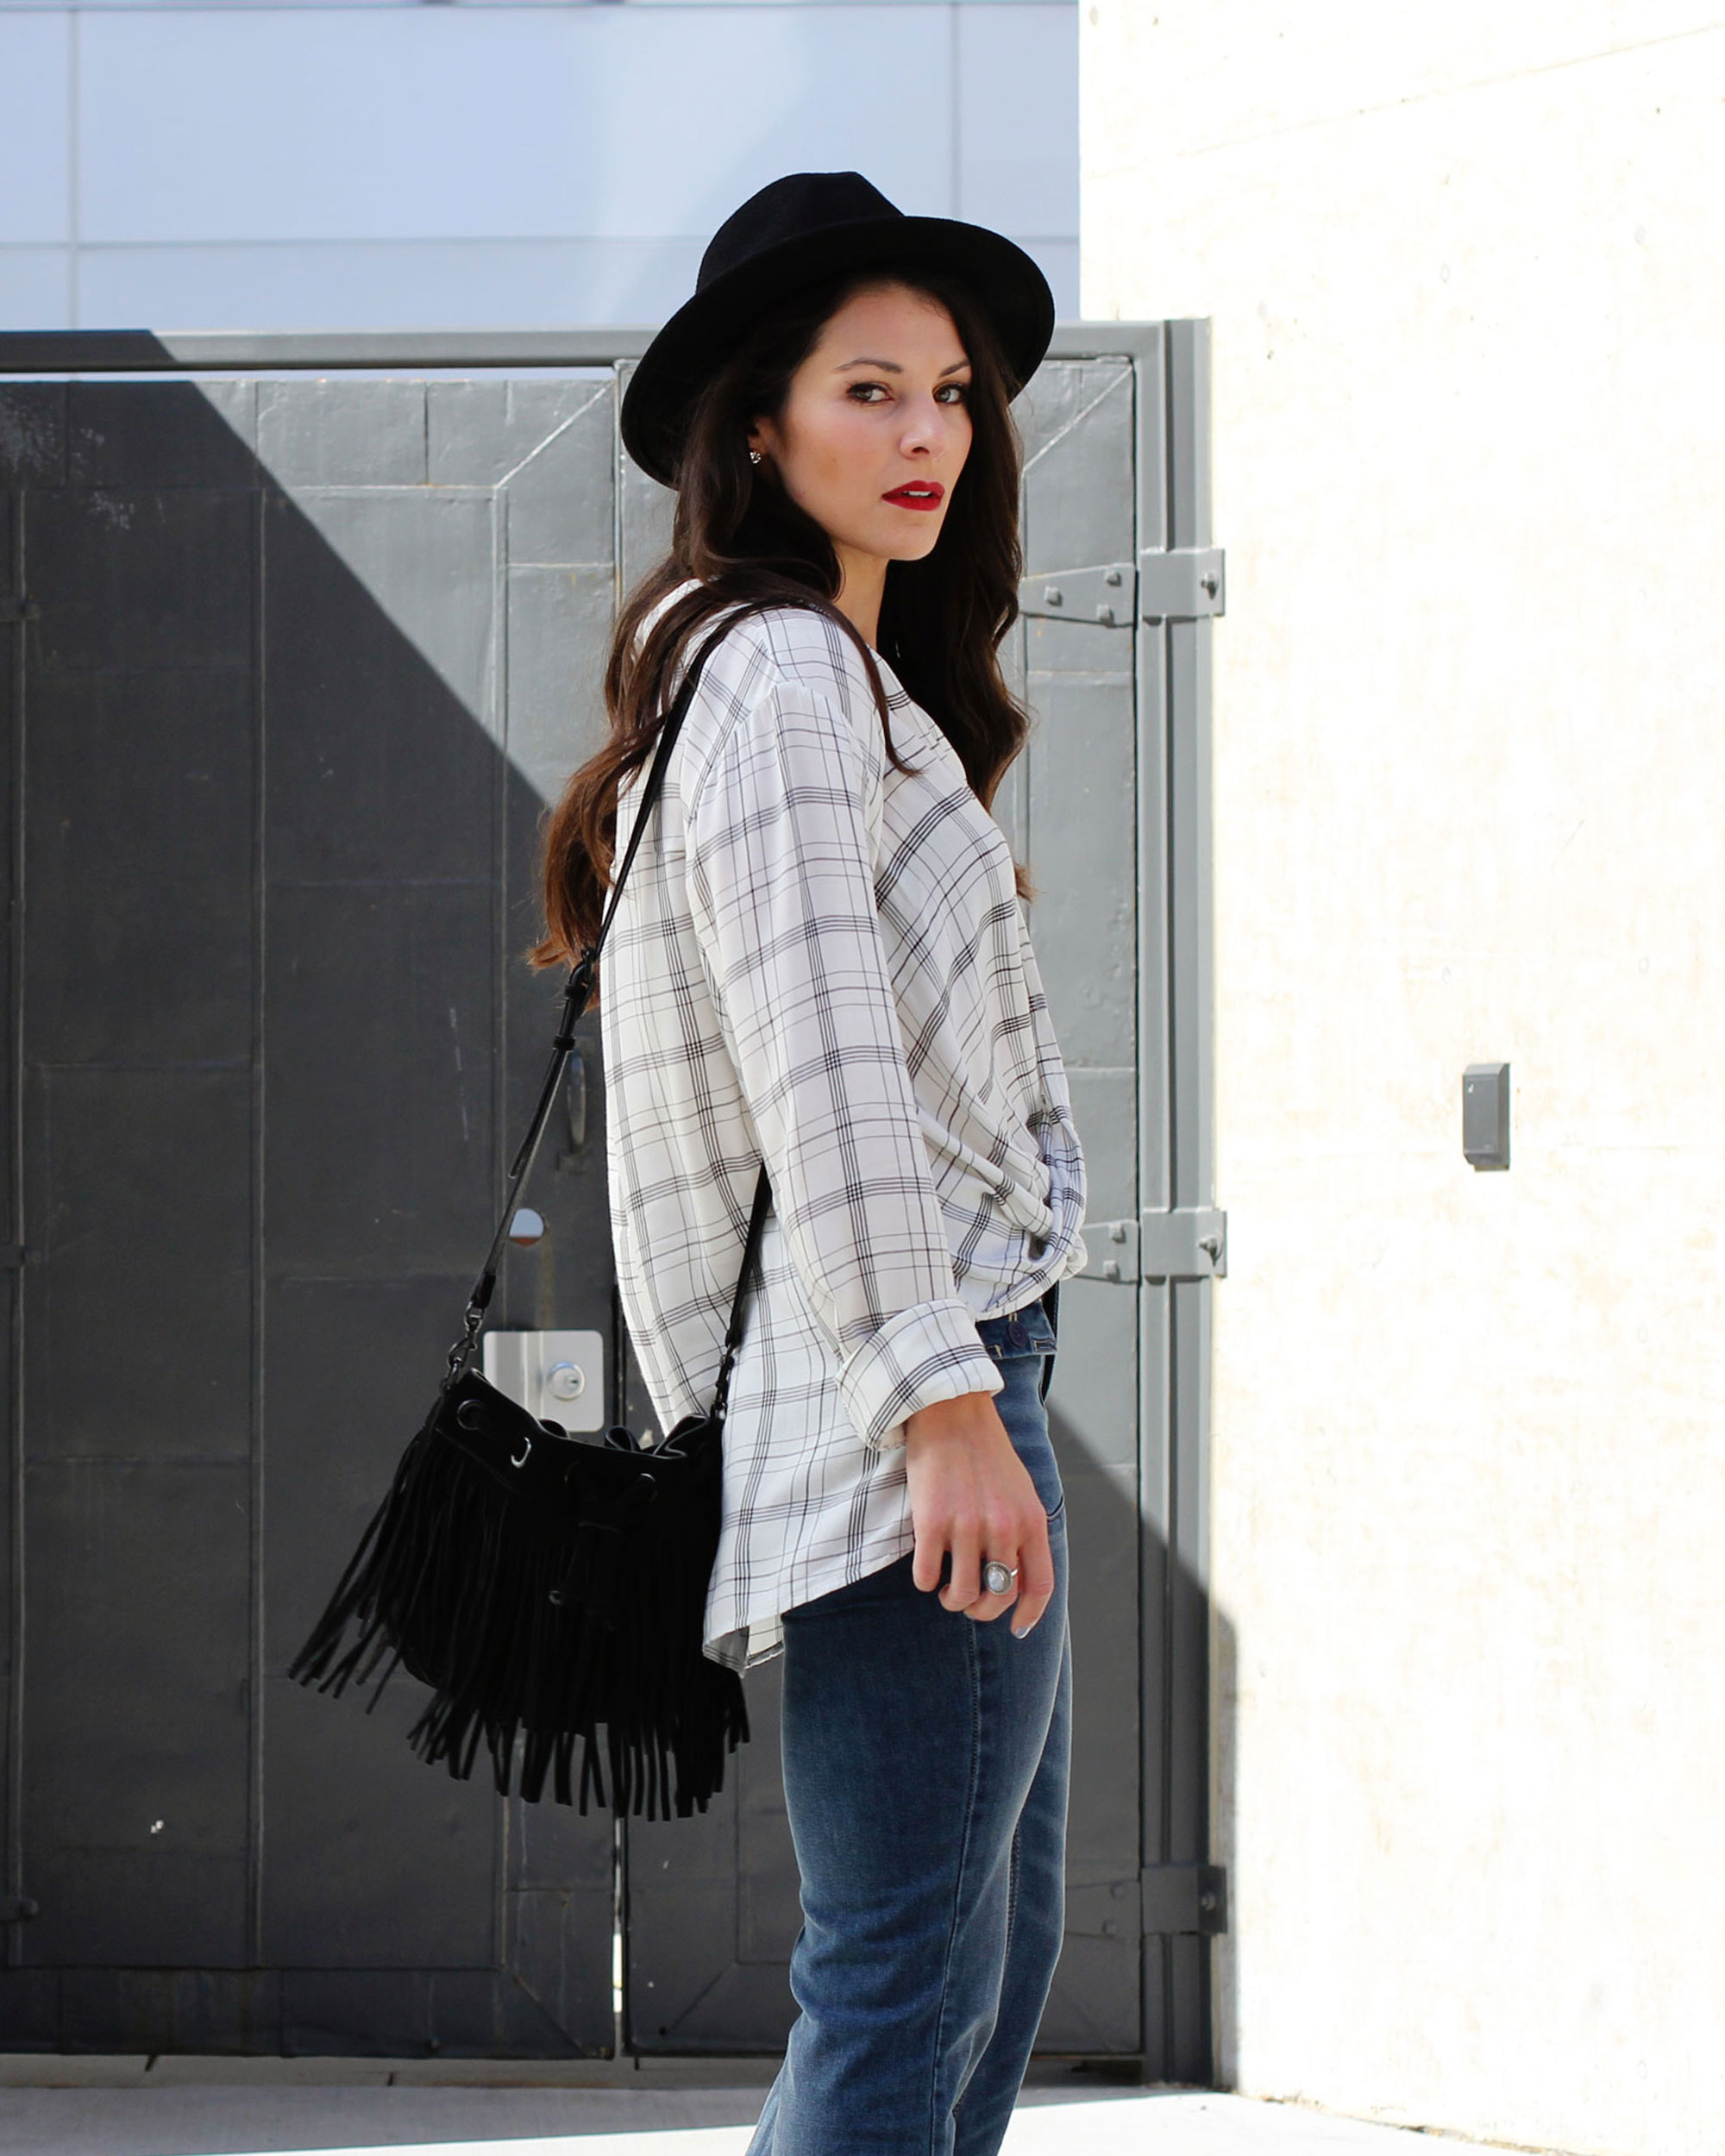 Fall Fashion, Flare Jeans, Rebecca Minkoff Fringe Bucket Bag, Abercrombie & Fitch Drapey Wrap Front Shirt, 70s Fashion Trend, NARS Lipstick Pencil in 'Cruella'